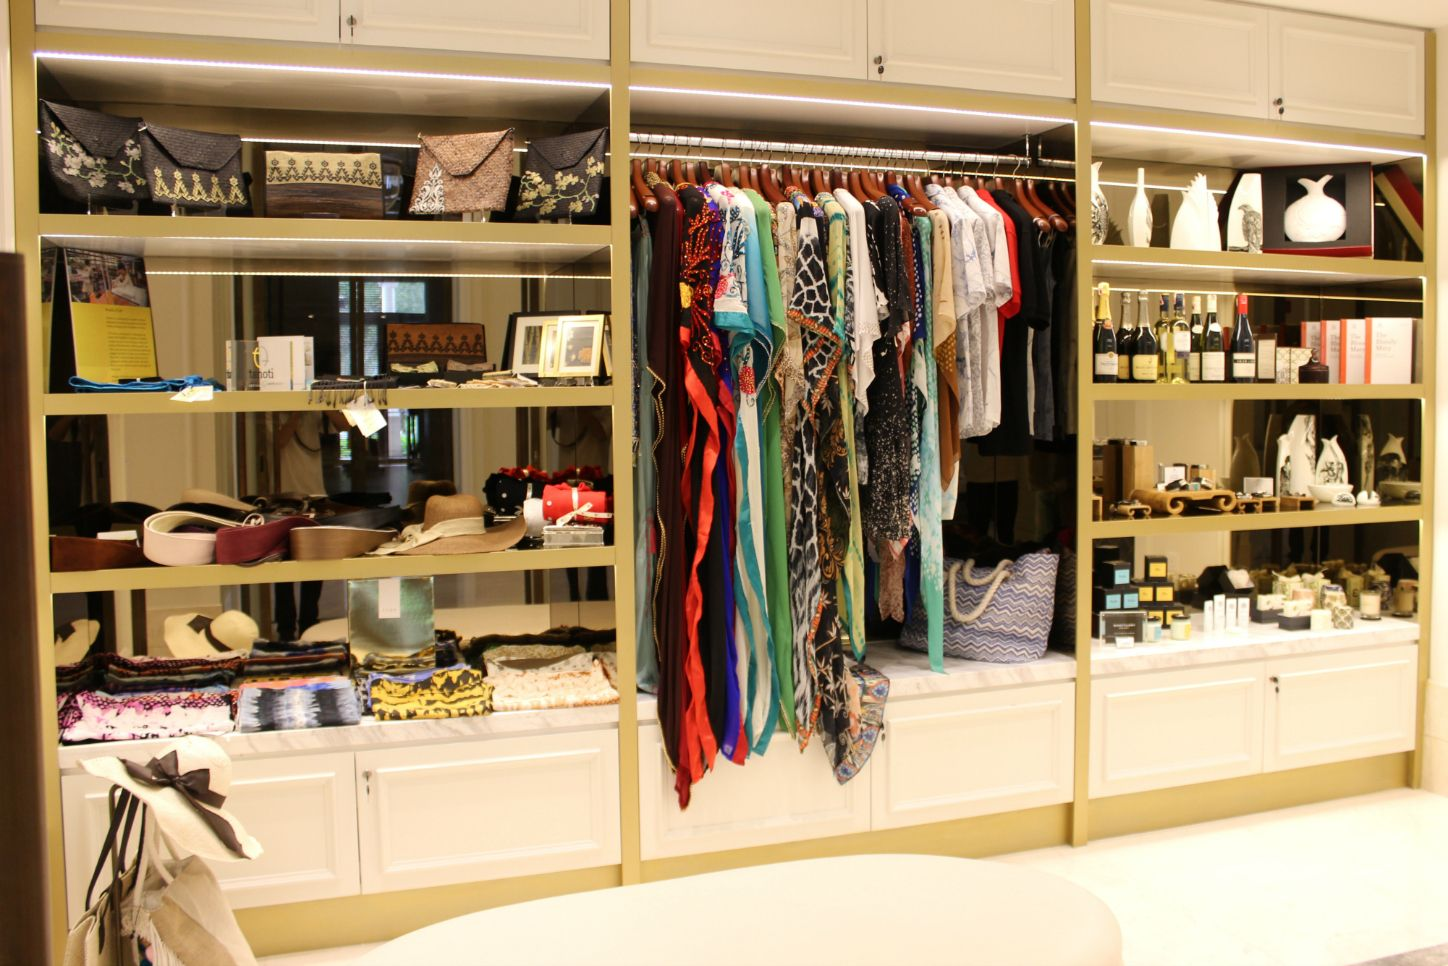 St. Regis Boutique - Luxury Shopping